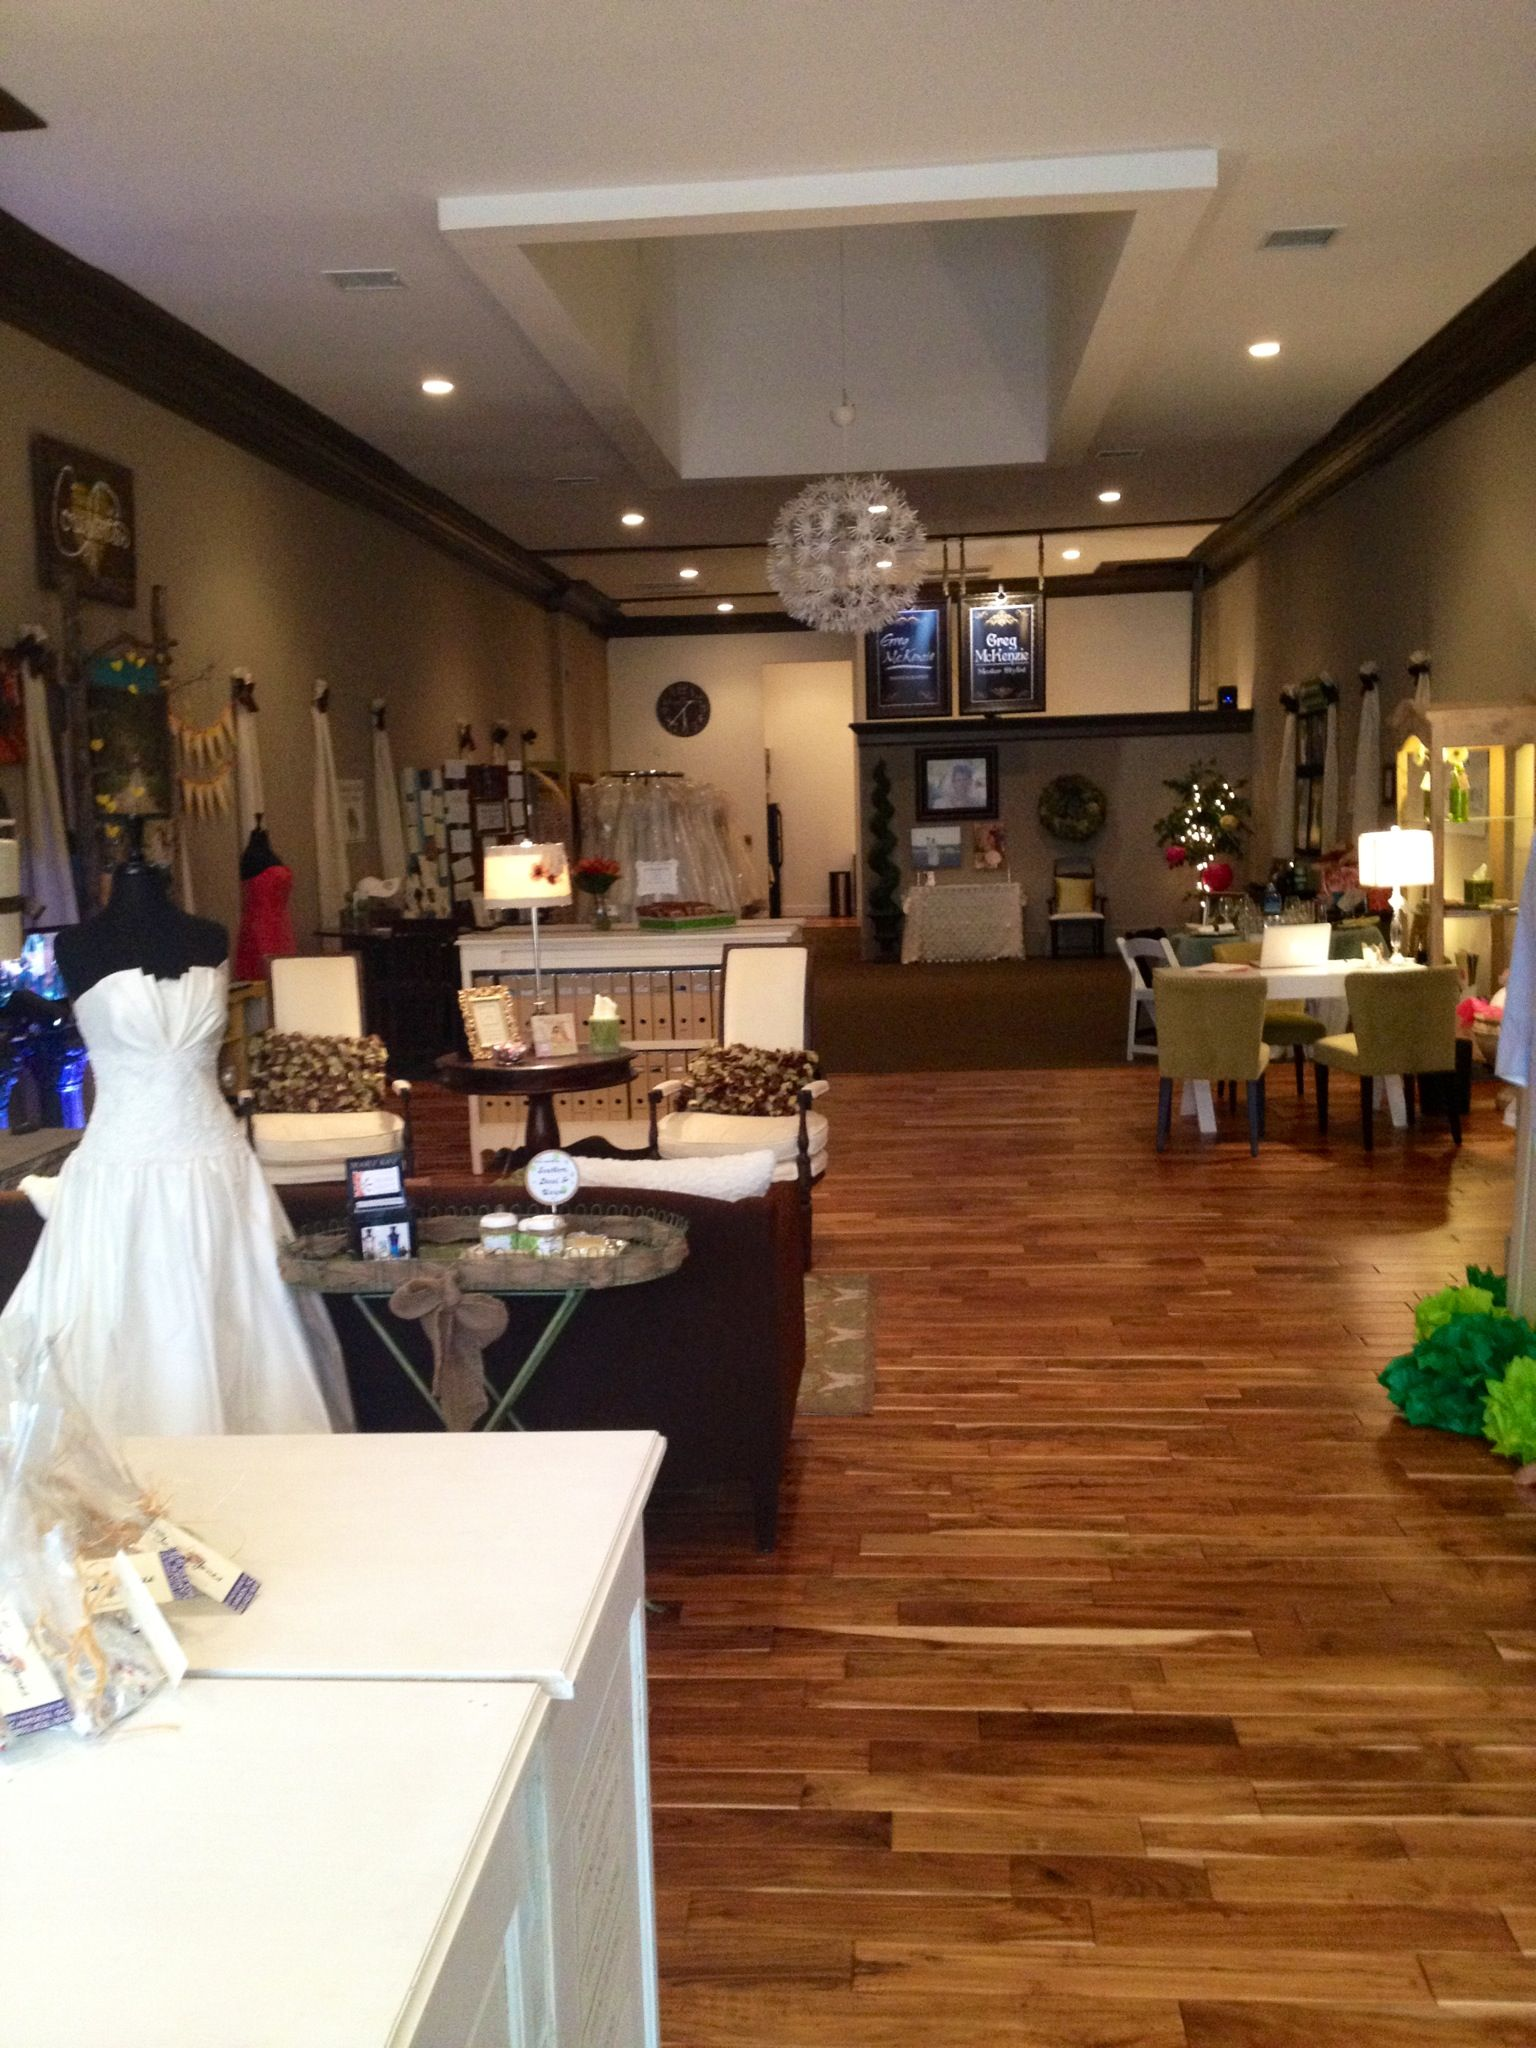 Come by and check out our studio! 1537 Main Street Suite B  Columbia, SC 29201